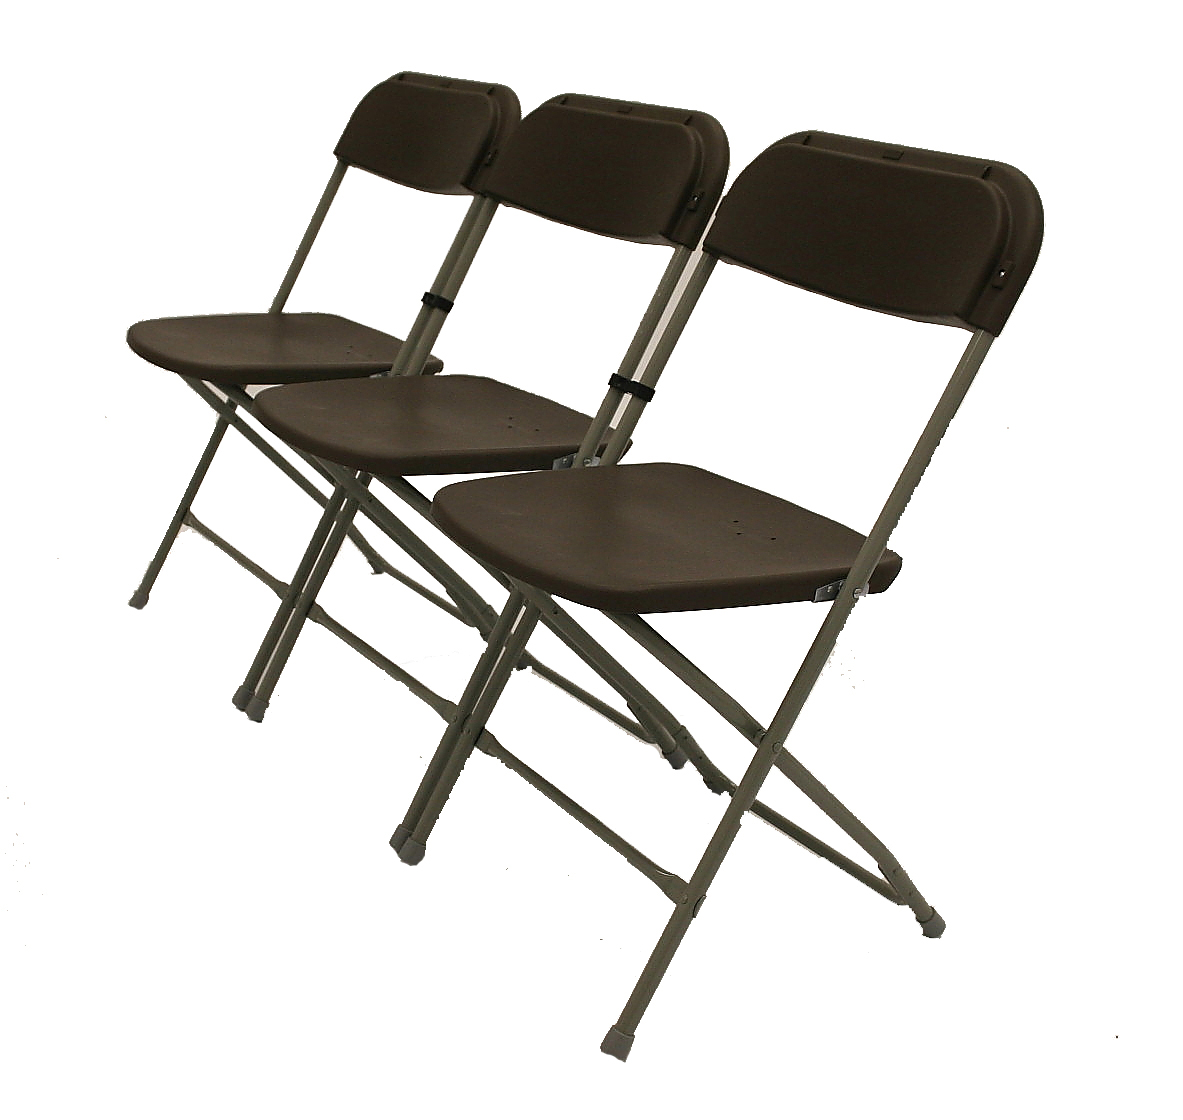 Lightweight tubular metal folding chairs linked together - BE Furniture Sales